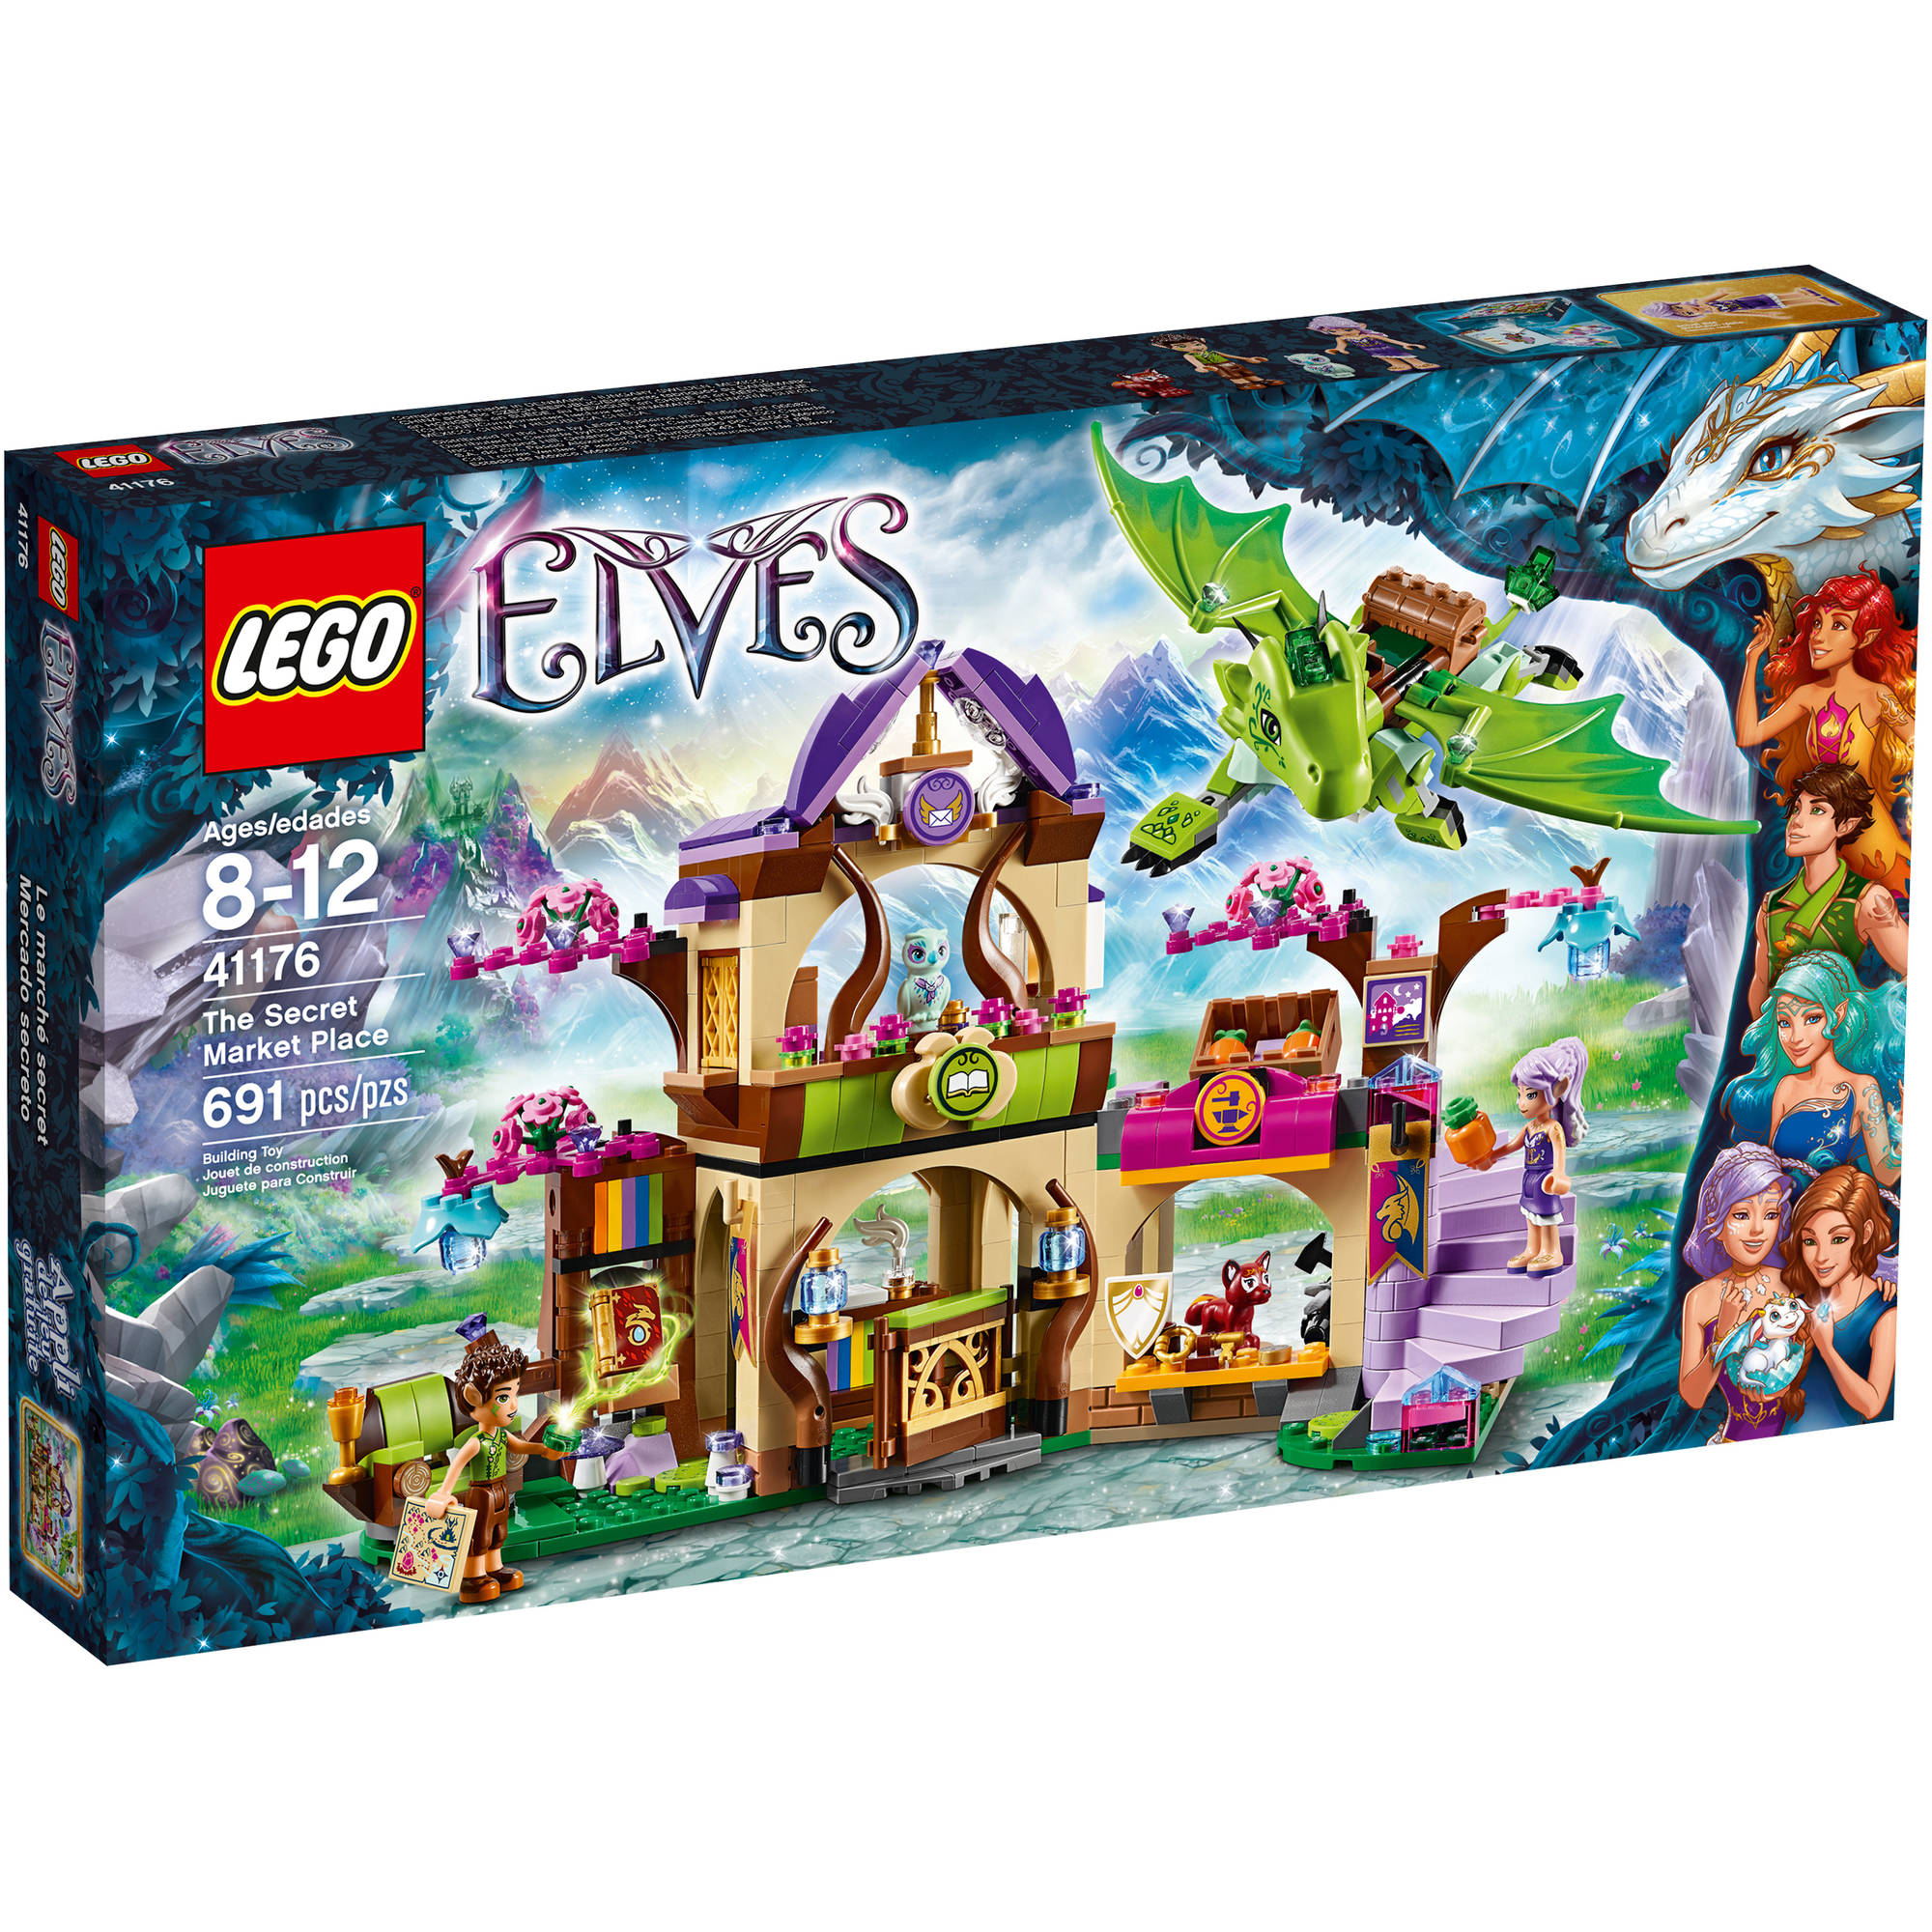 The Place41176 Elves Secret Market Lego sChrdxtQ